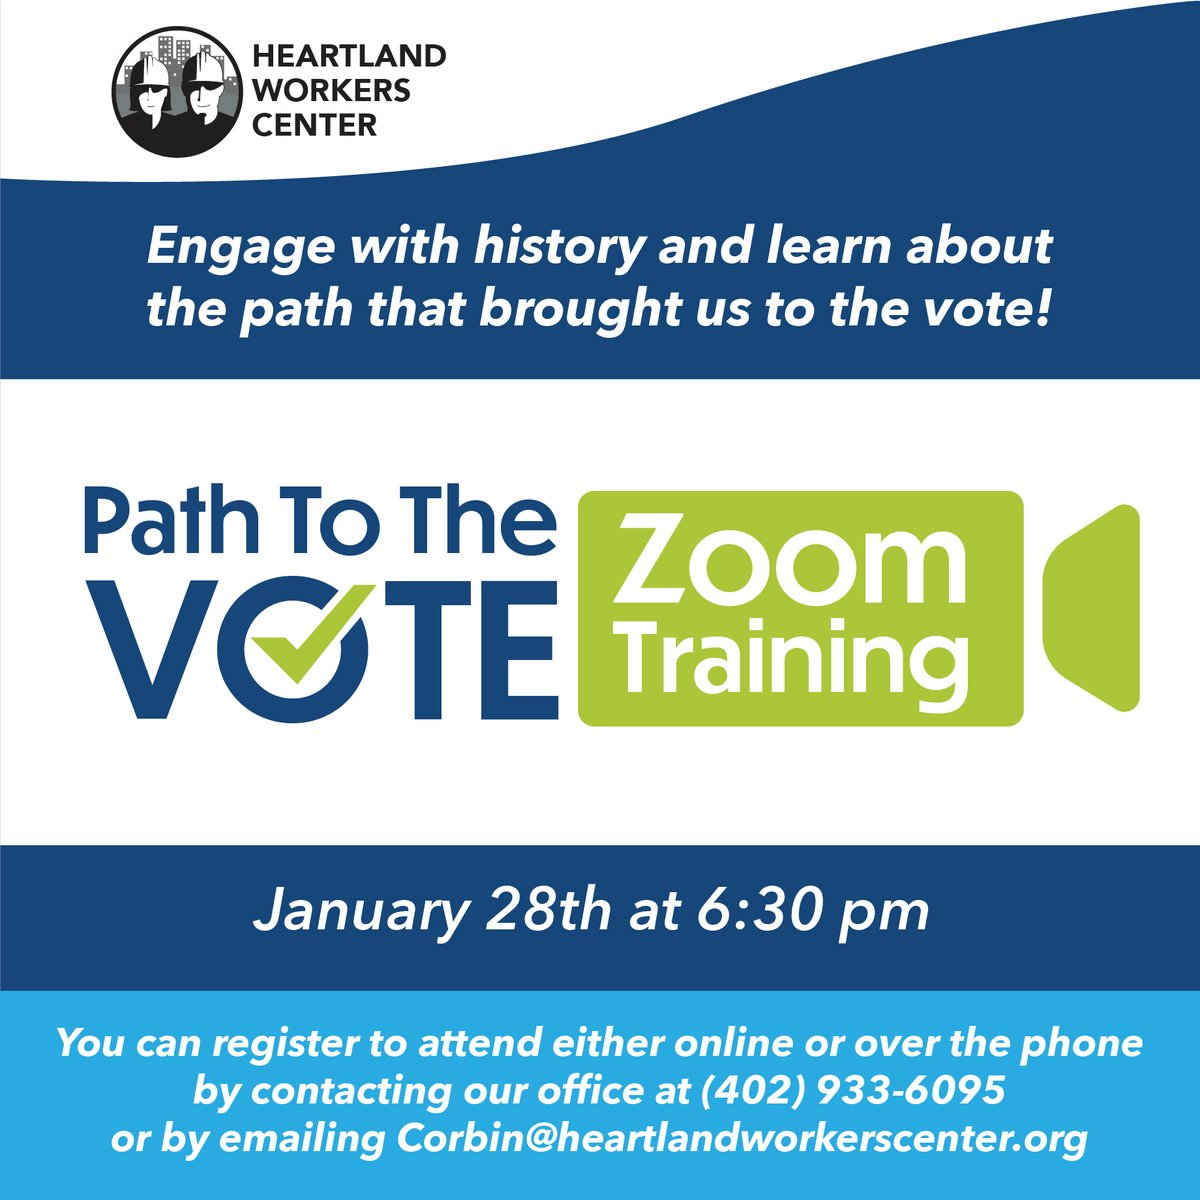 Participants will have the opportunity to engage with history and learn how voting has been a historical struggle for many people in the U.S., how we gained the rights we have today, and why your voice matters.   Your voice counts and impacts your family and your community! #vote